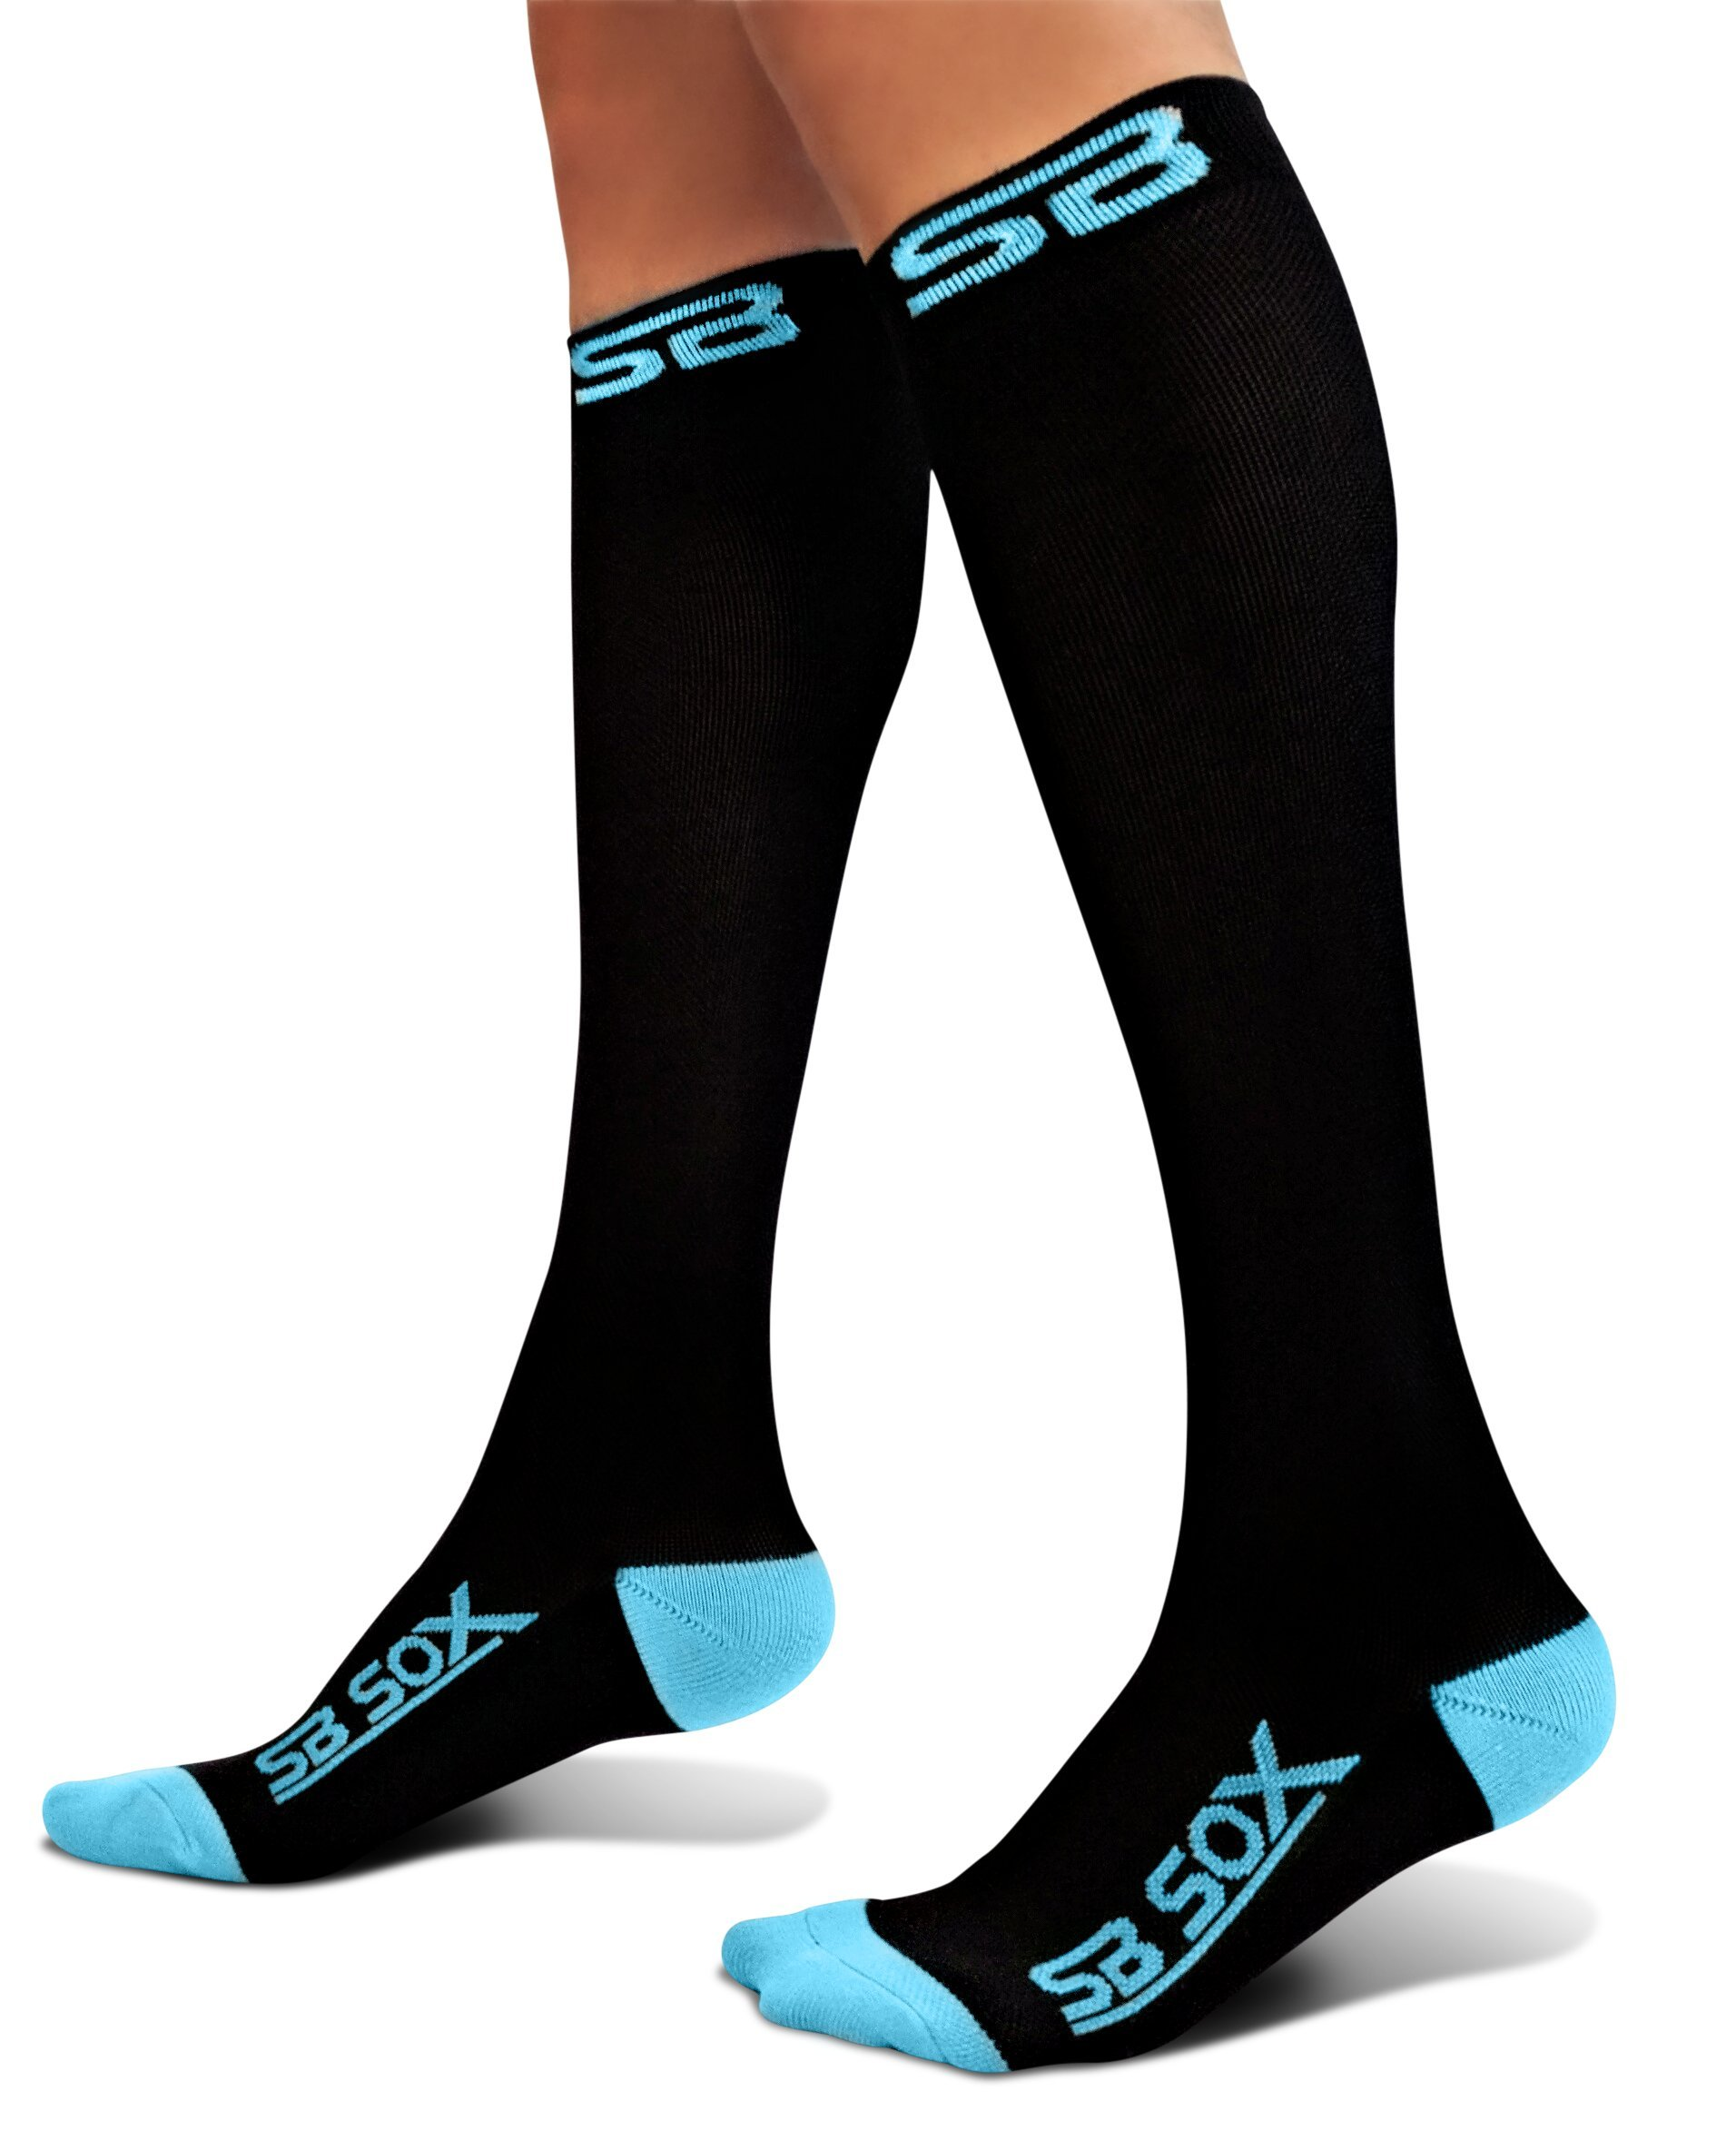 45c4d0e92 SB SOX Compression Socks (20-30mmHg) for Men   Women – Best Stockings for  Running